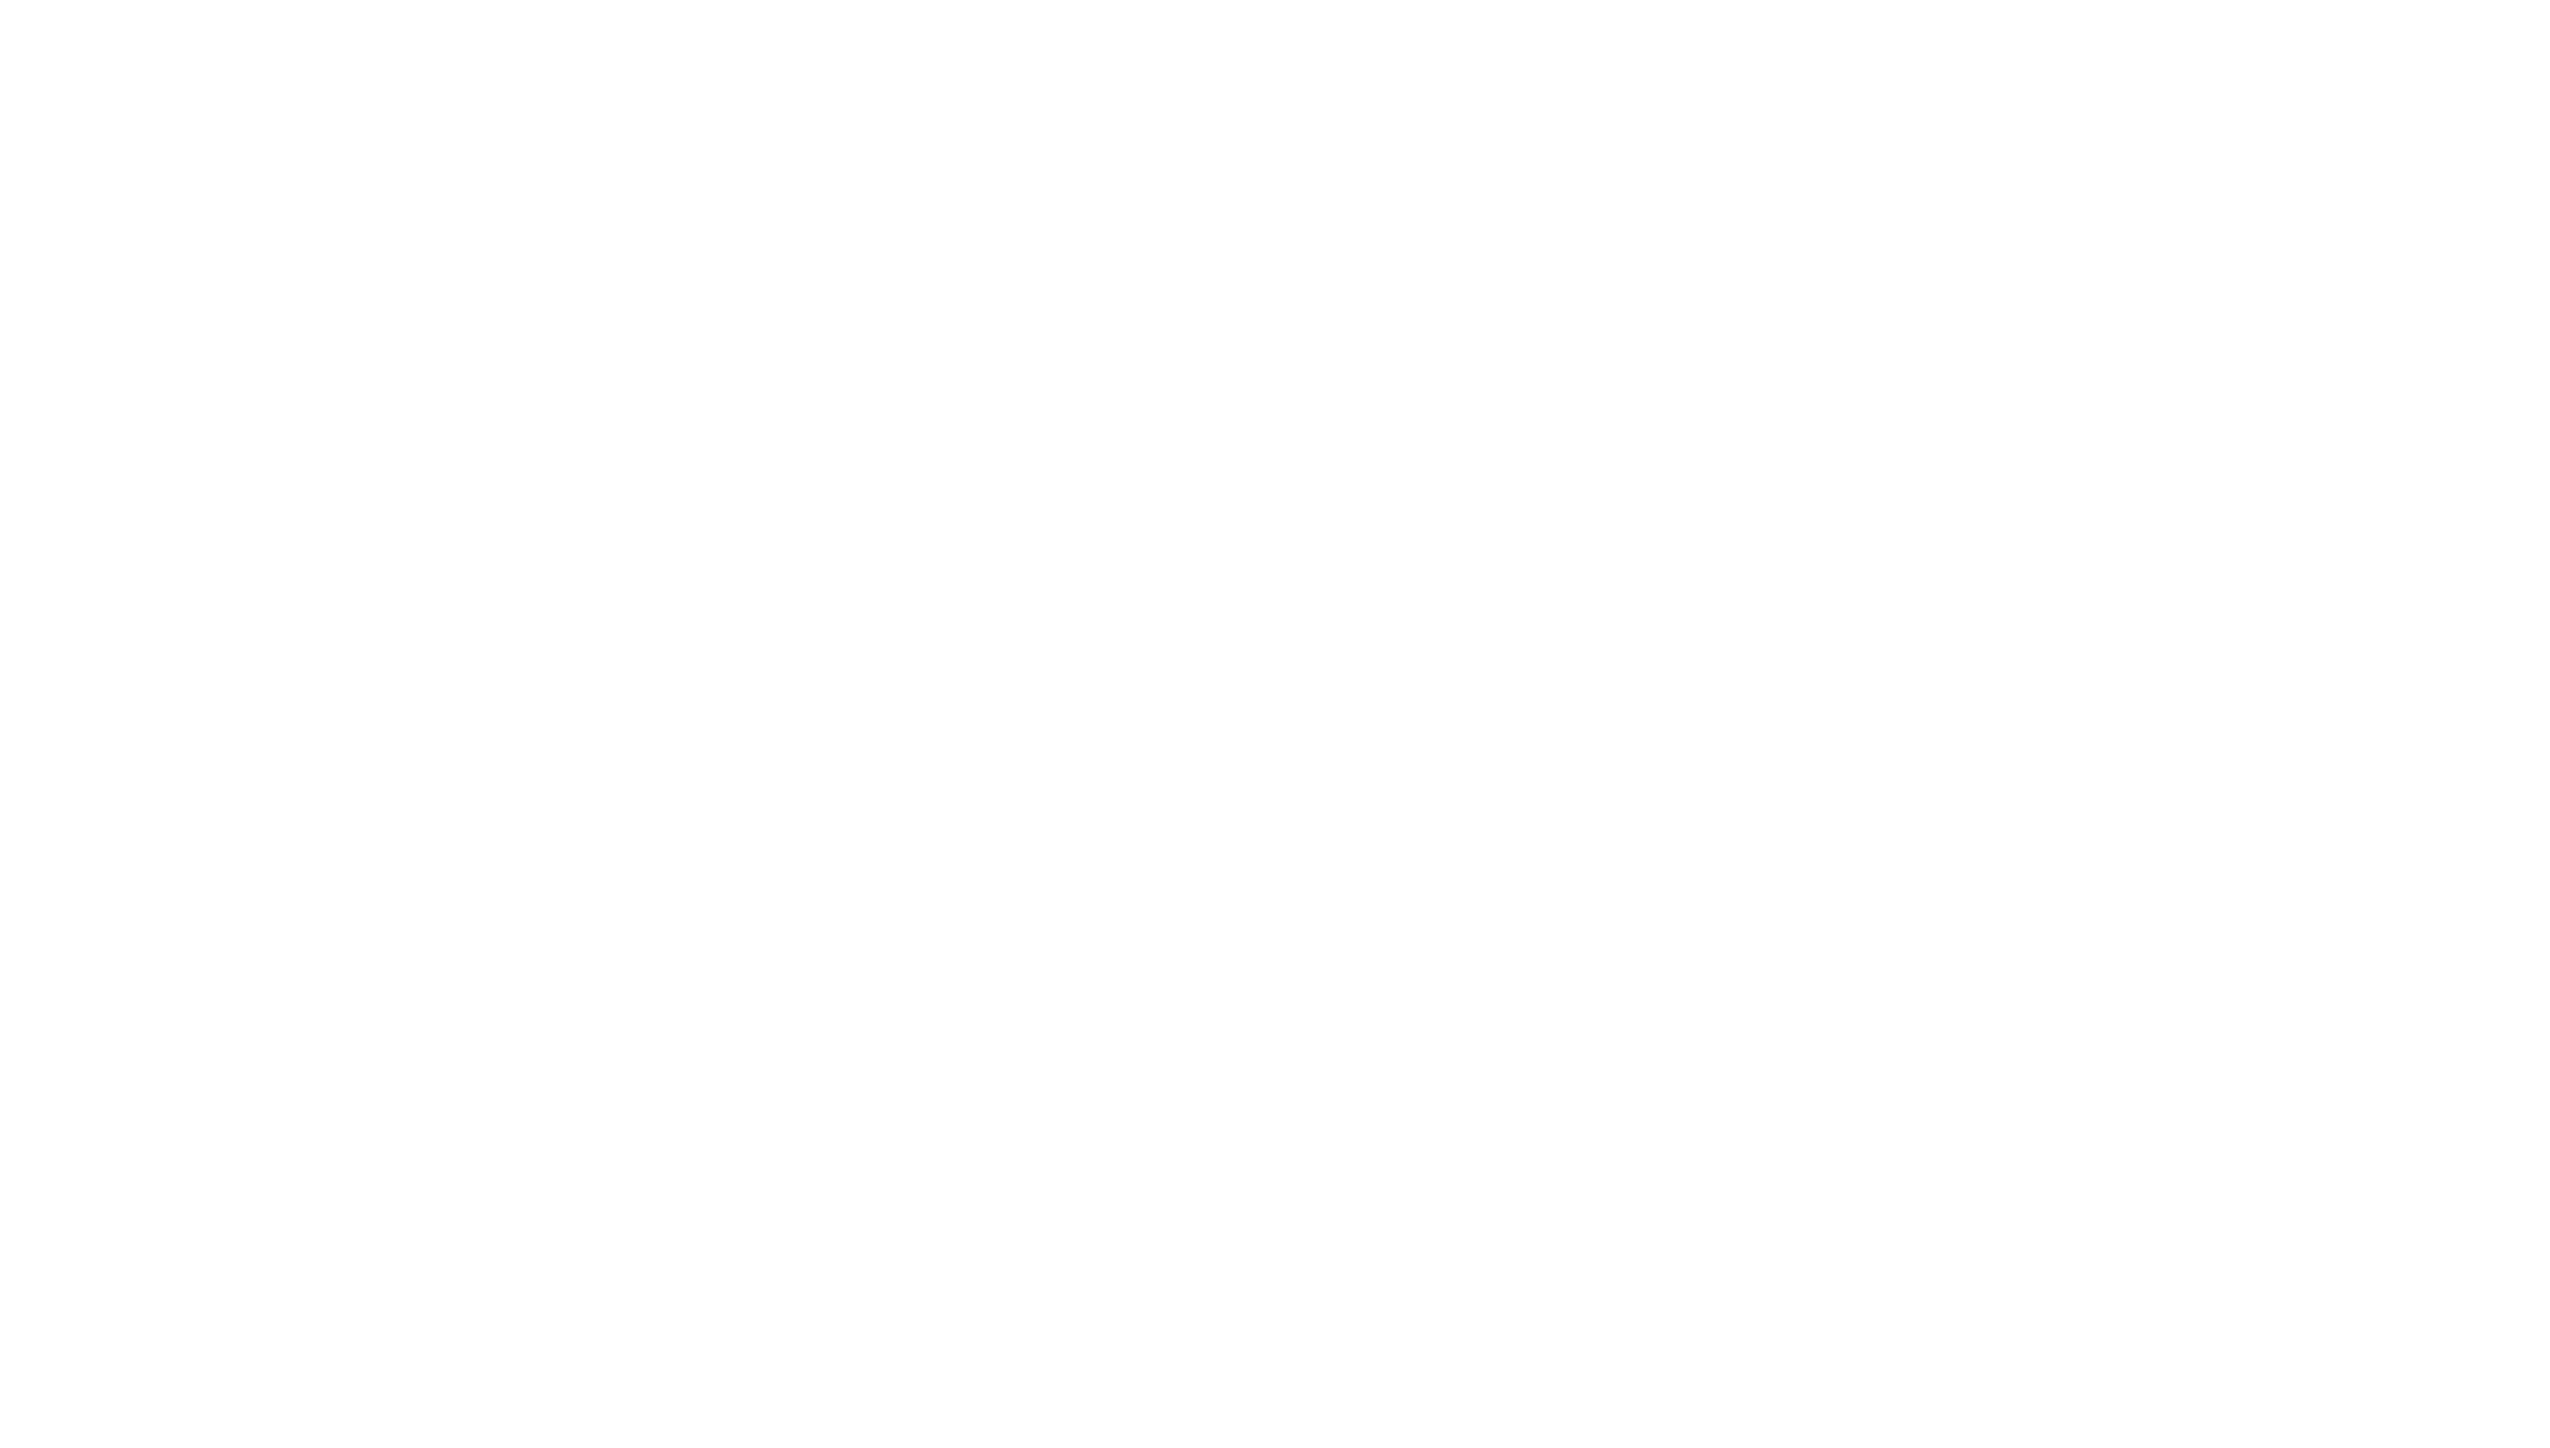 Advanced Wide Constructions